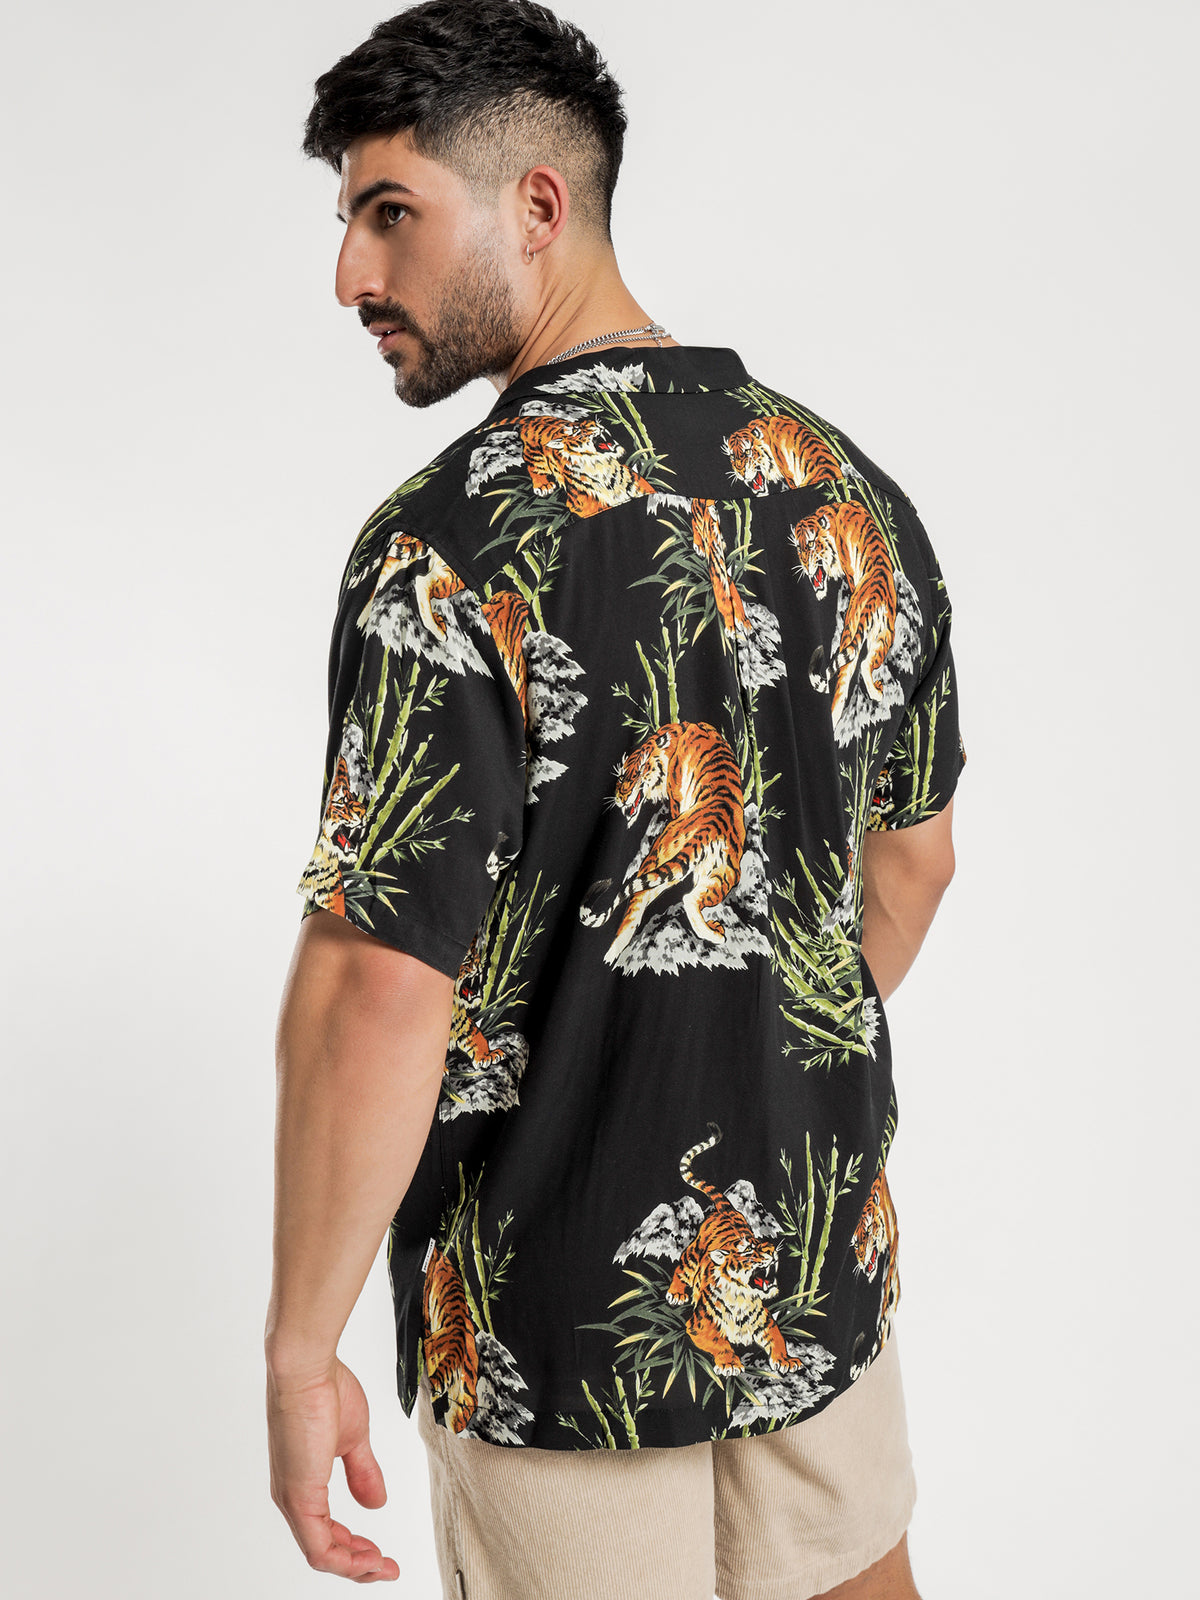 Orient Short Sleeve Shirt in Black